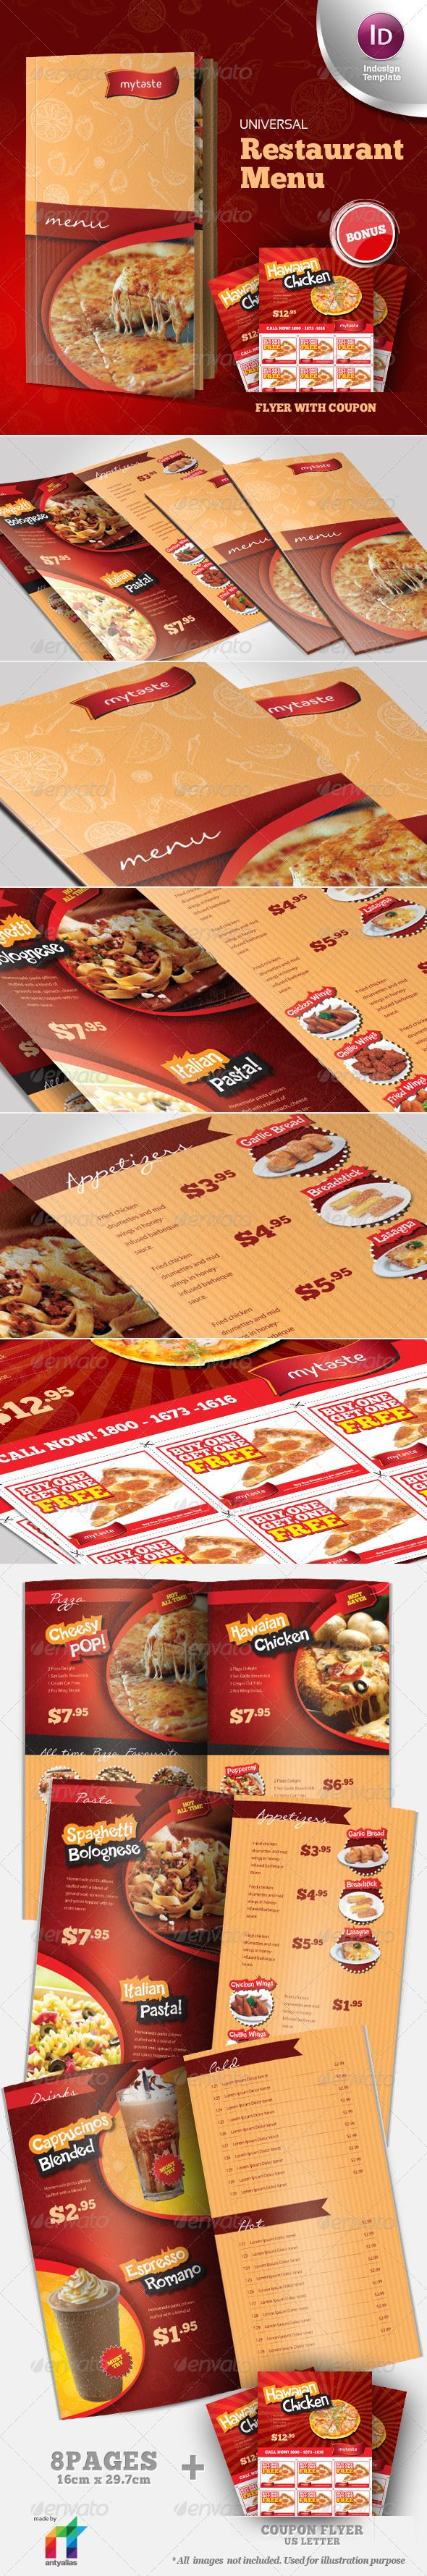 Universal Restaurant Menu Indesign Template Pizza fast food hamburguesería flyer…